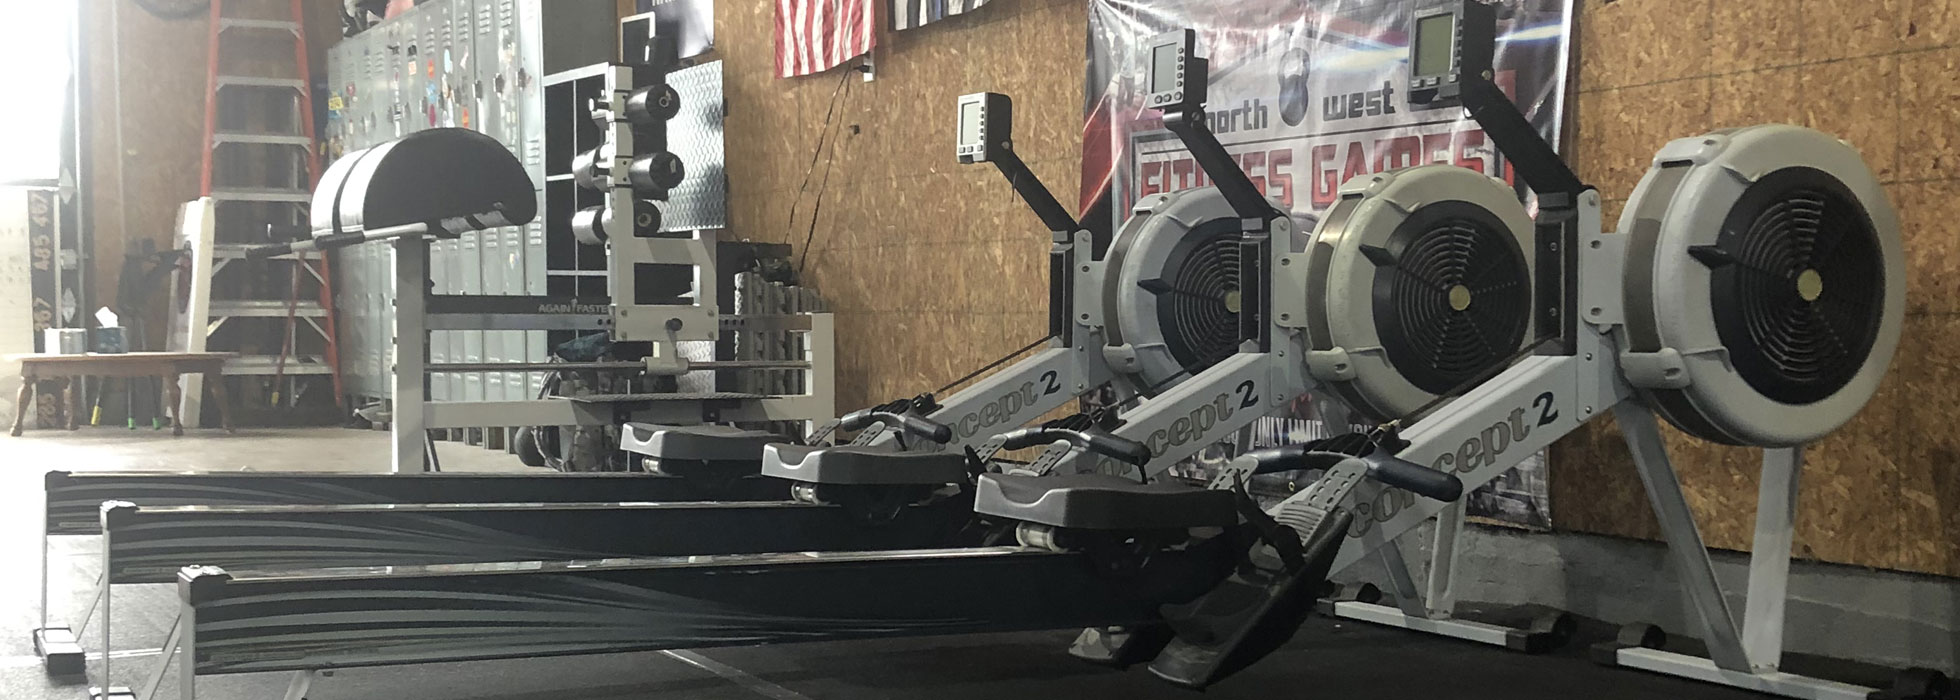 Check Out Our Gym Near You In Salem, OR